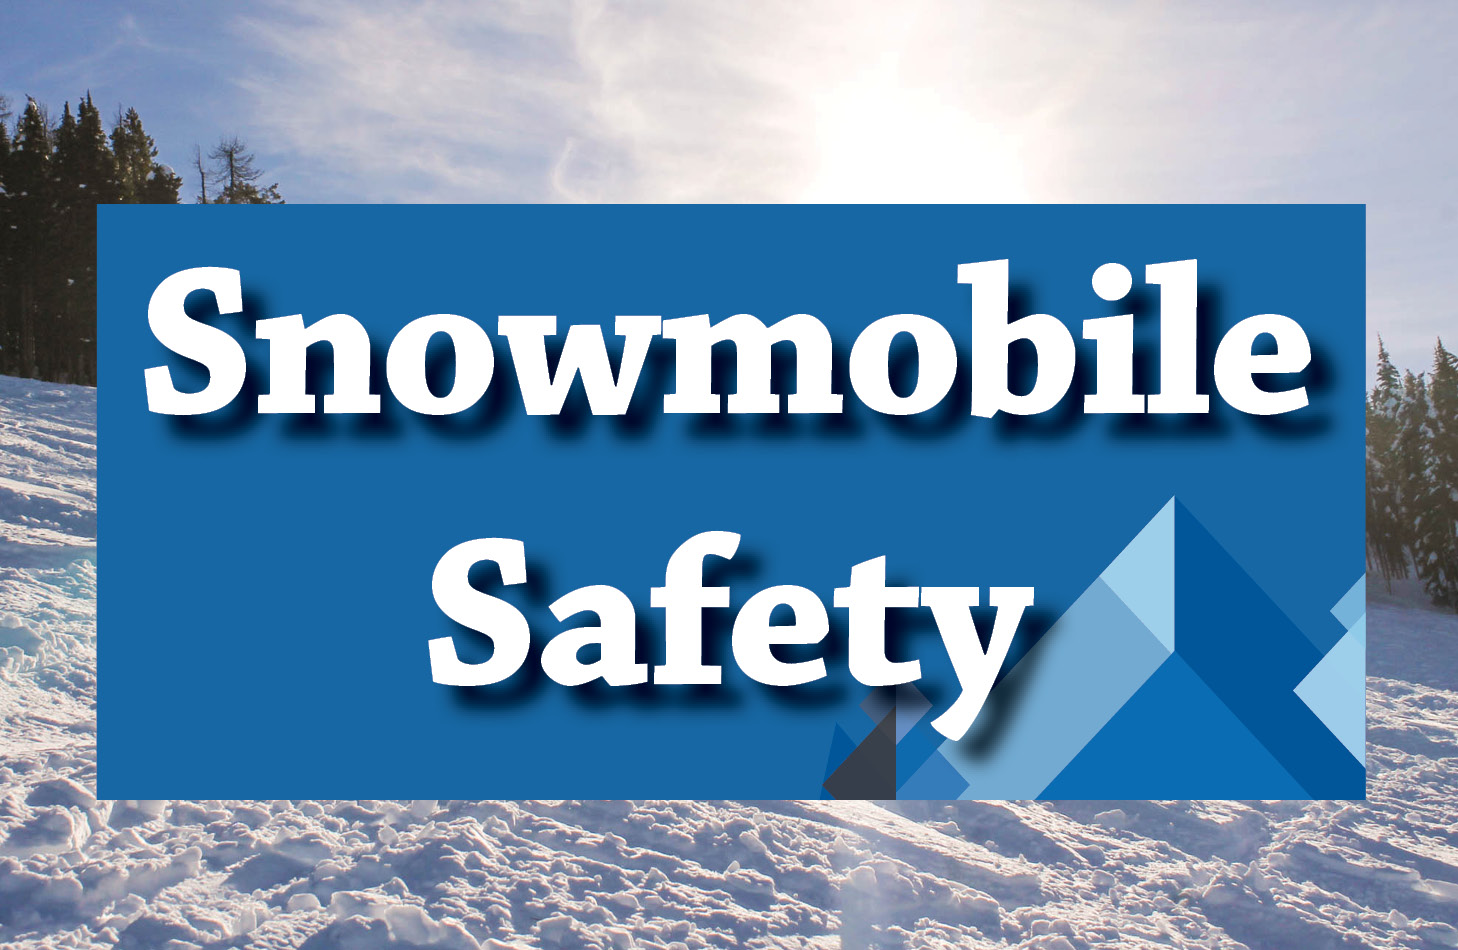 Snowmobiles Safety